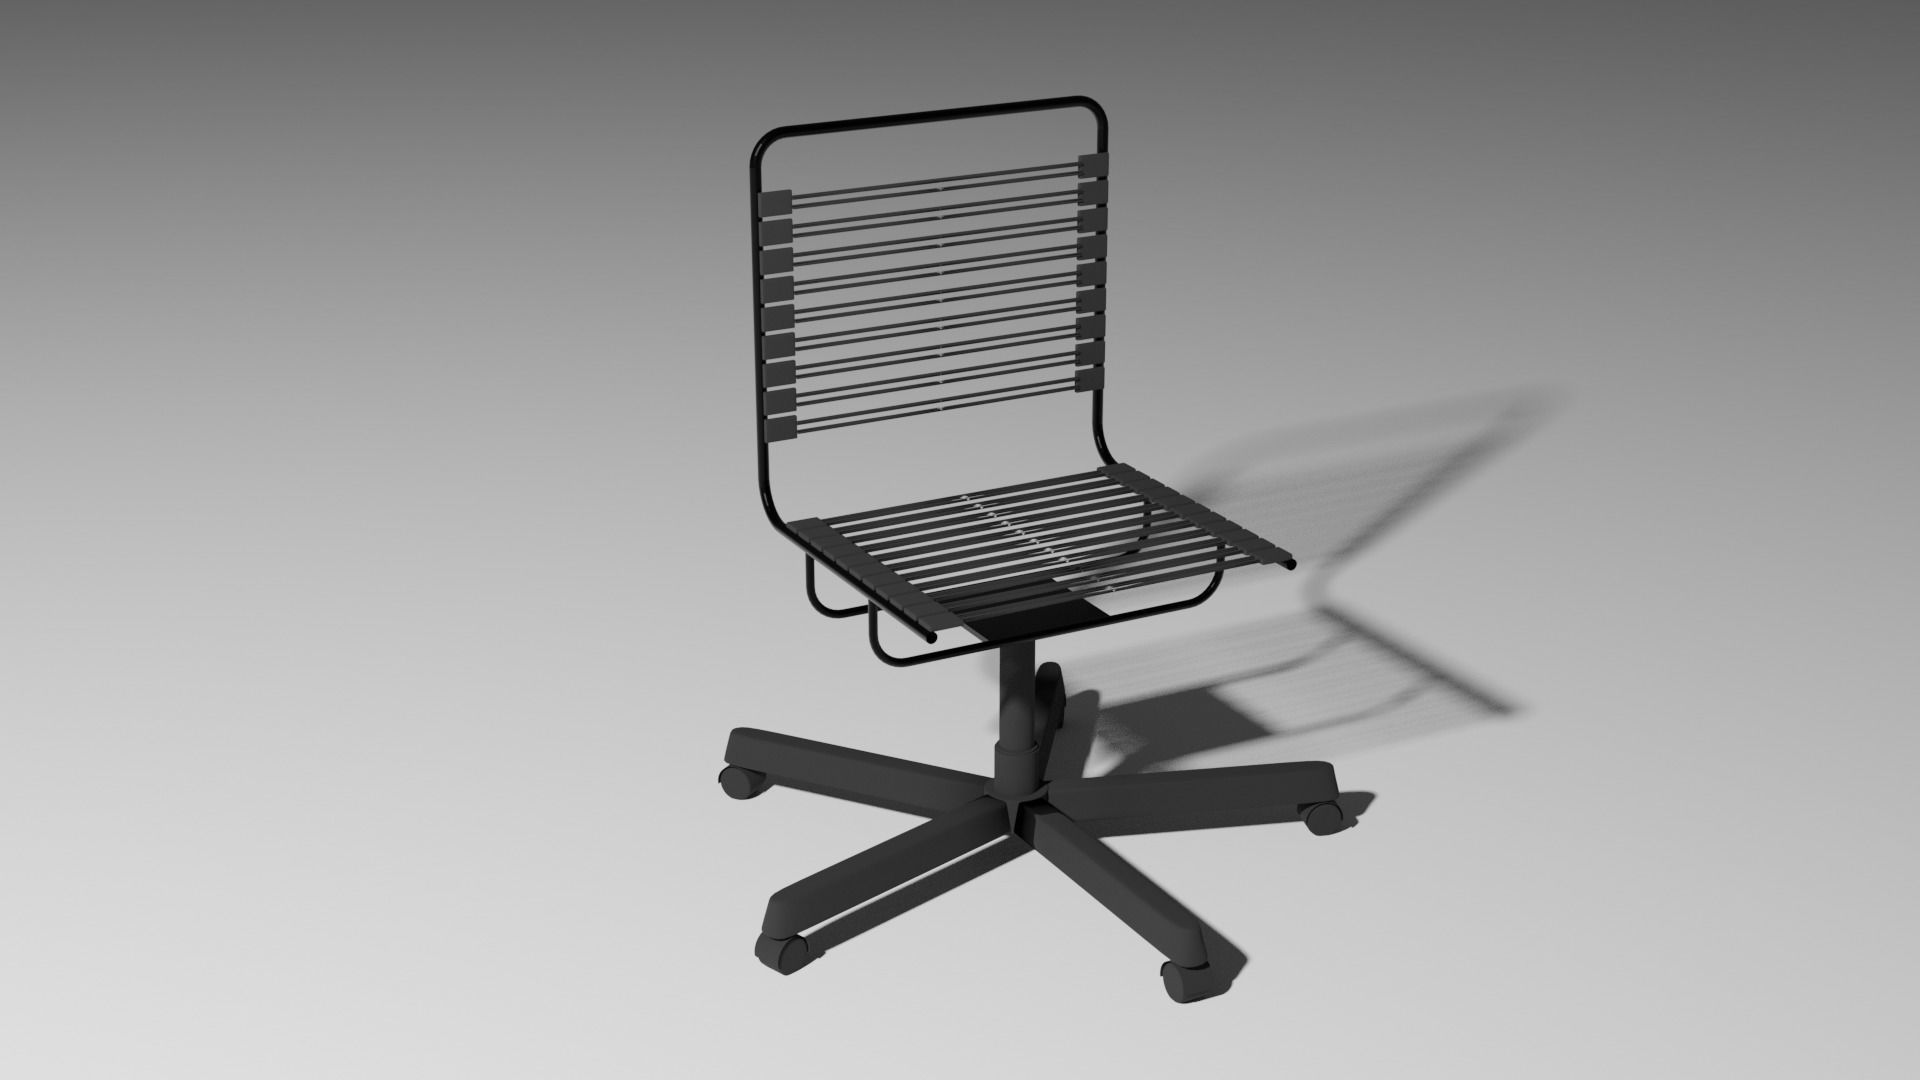 Bungee Cord Desk Chair 3d Model